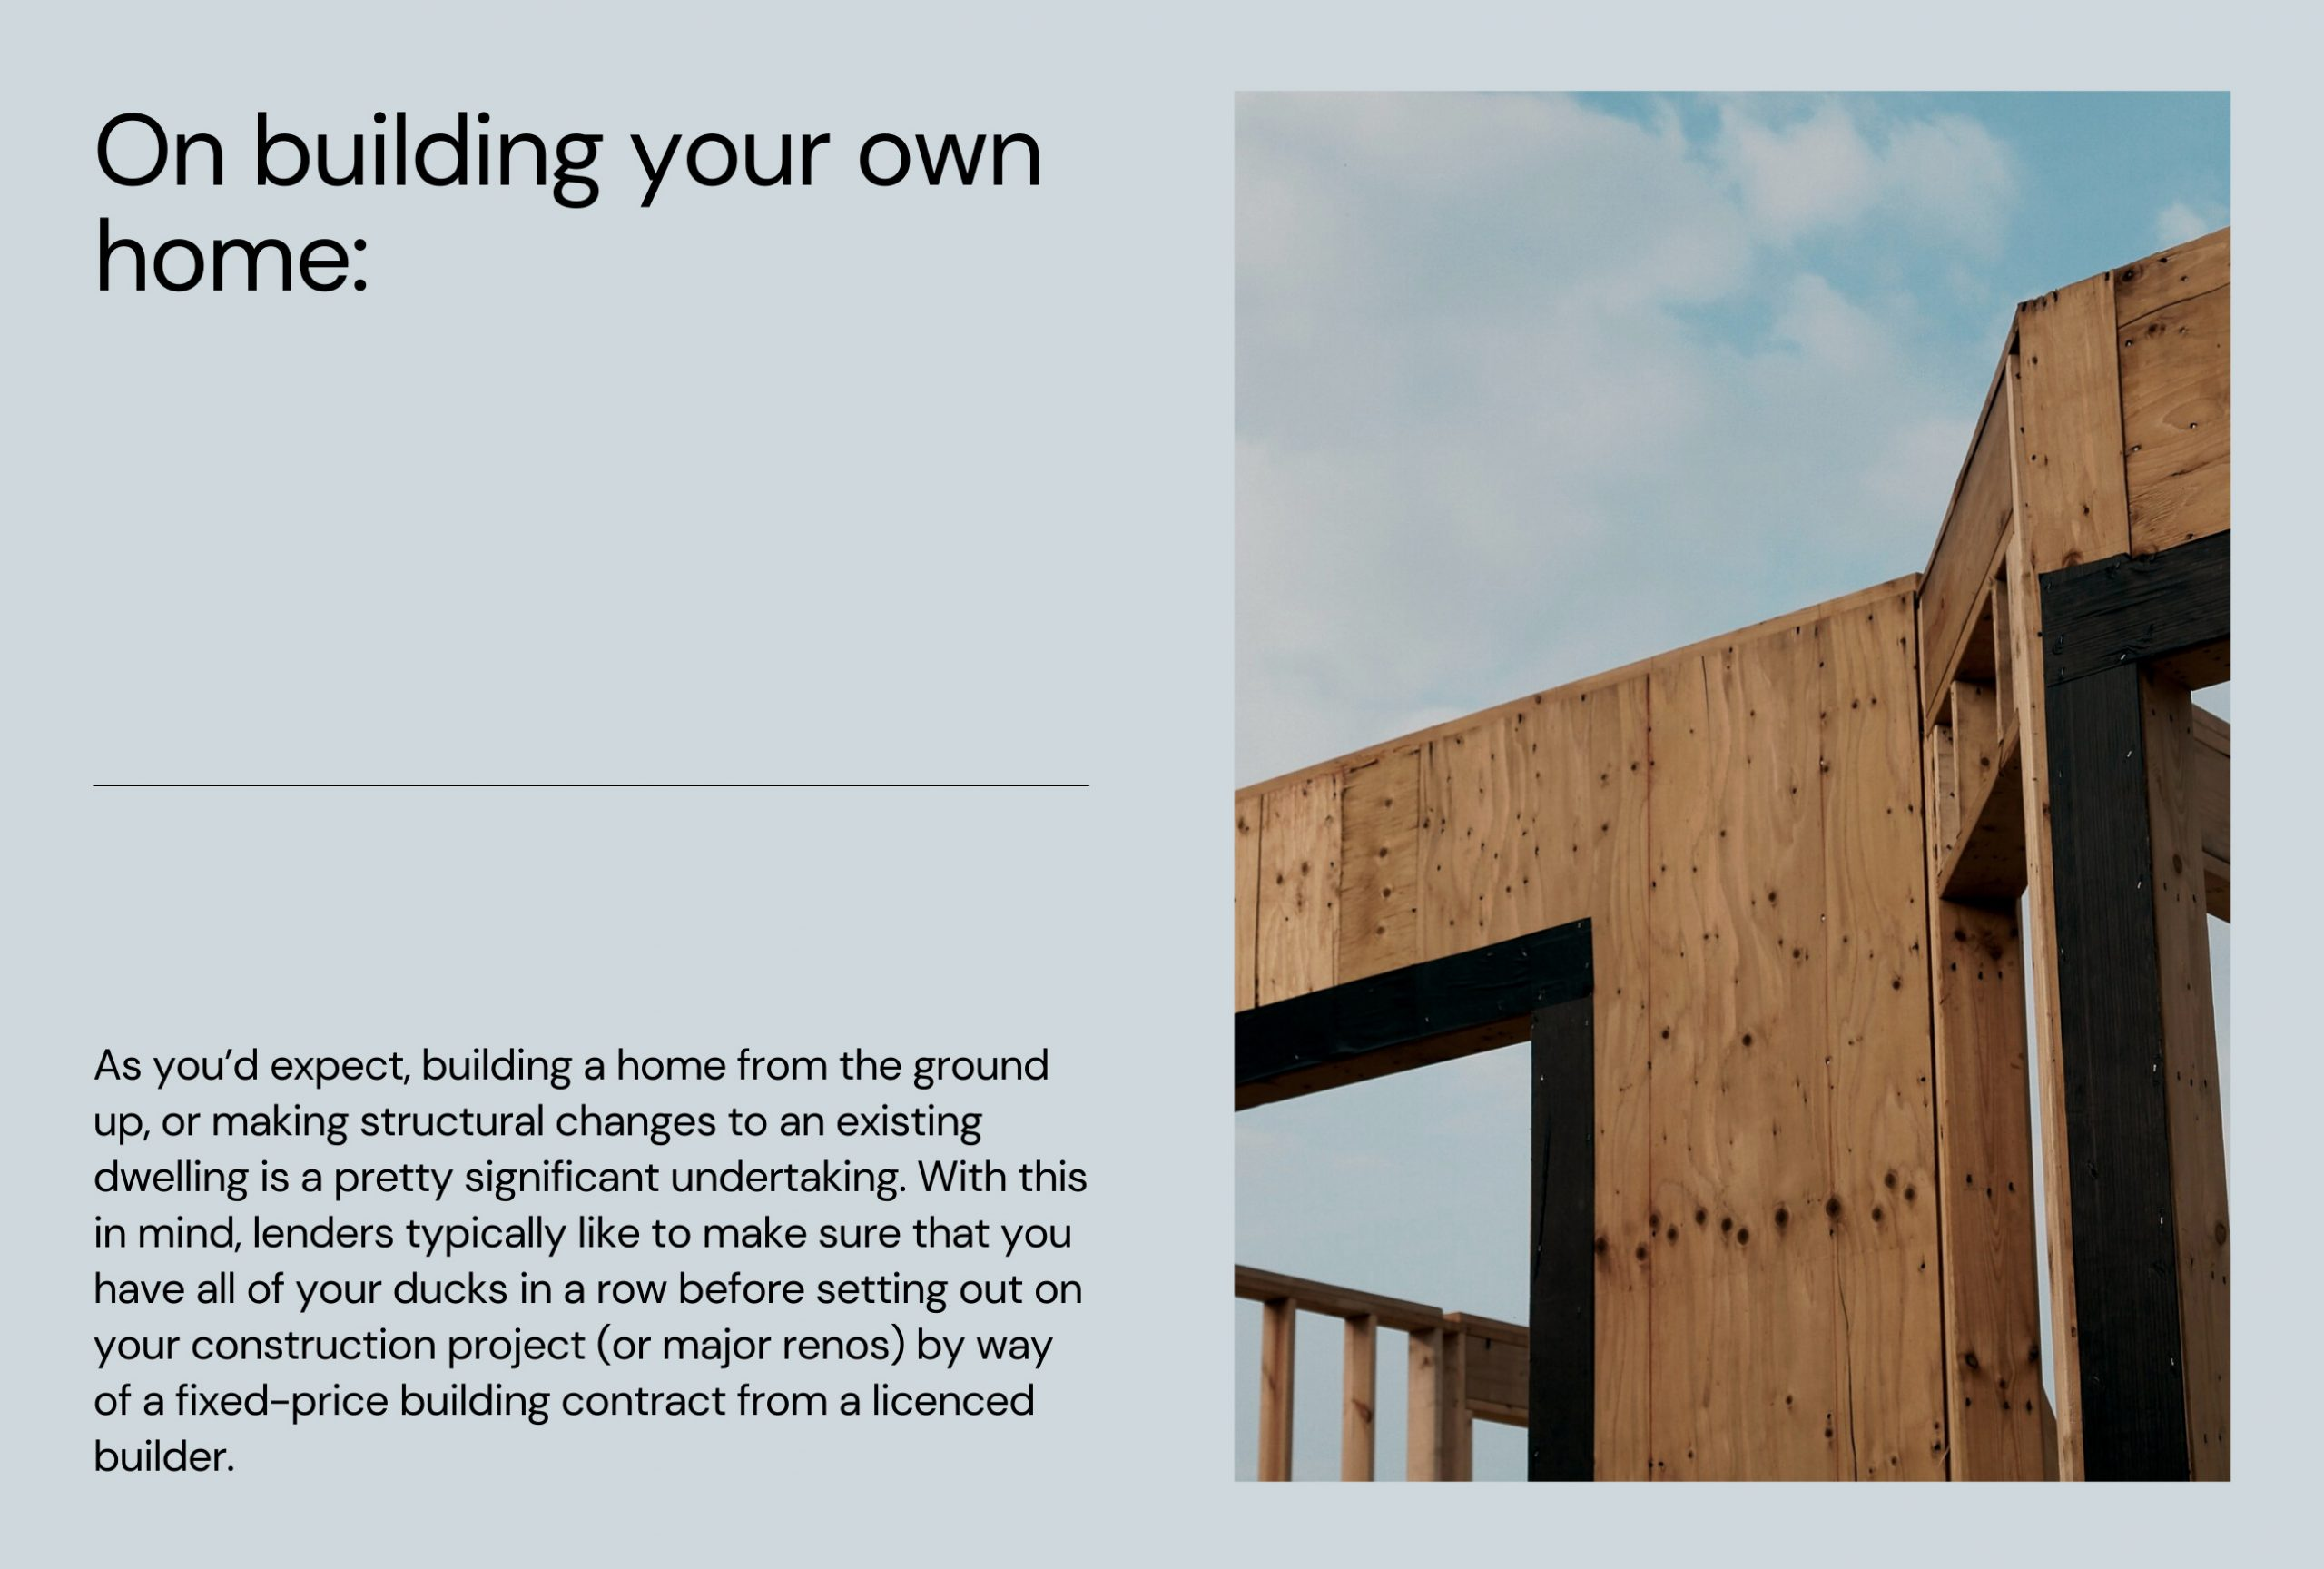 Building a home? Here's what to consider